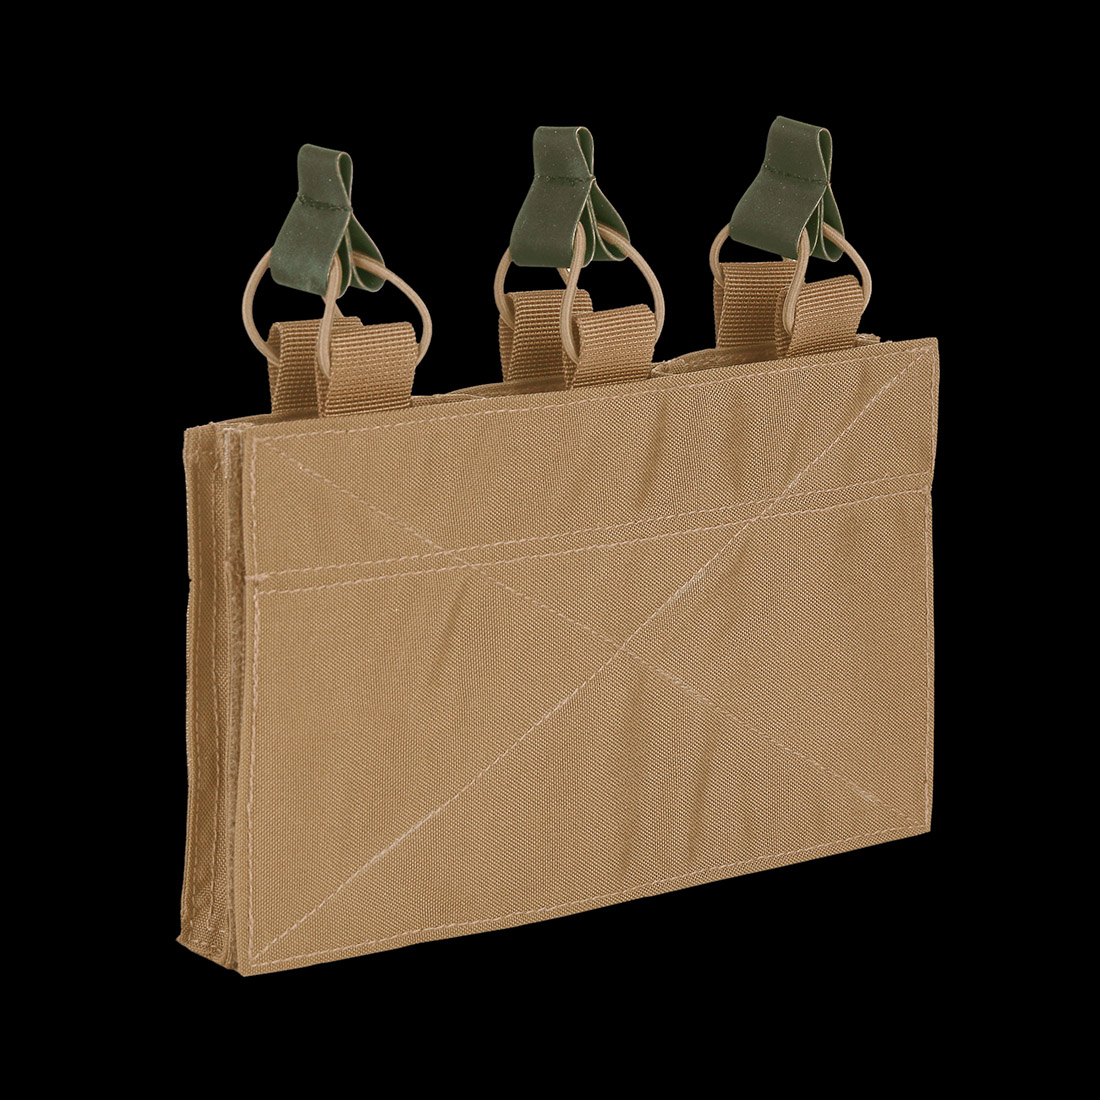 TF-2215 Triple M4 Pouch Velcro Panel Coyote